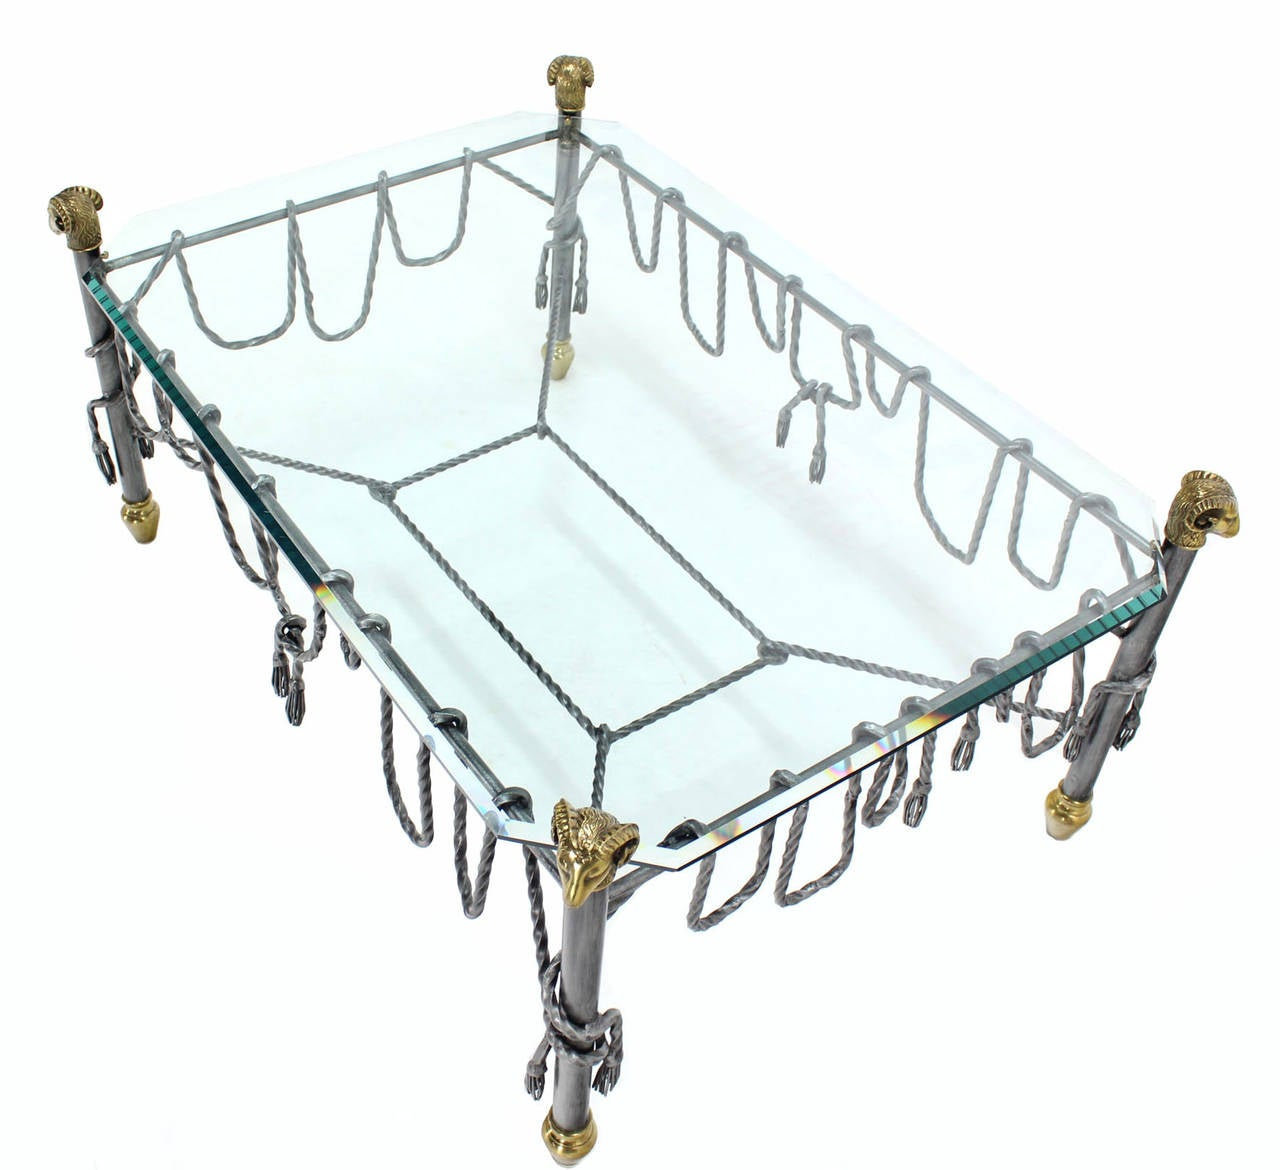 20th Century Ornate Wrought Iron Brass and Glass Coffee Table For Sale